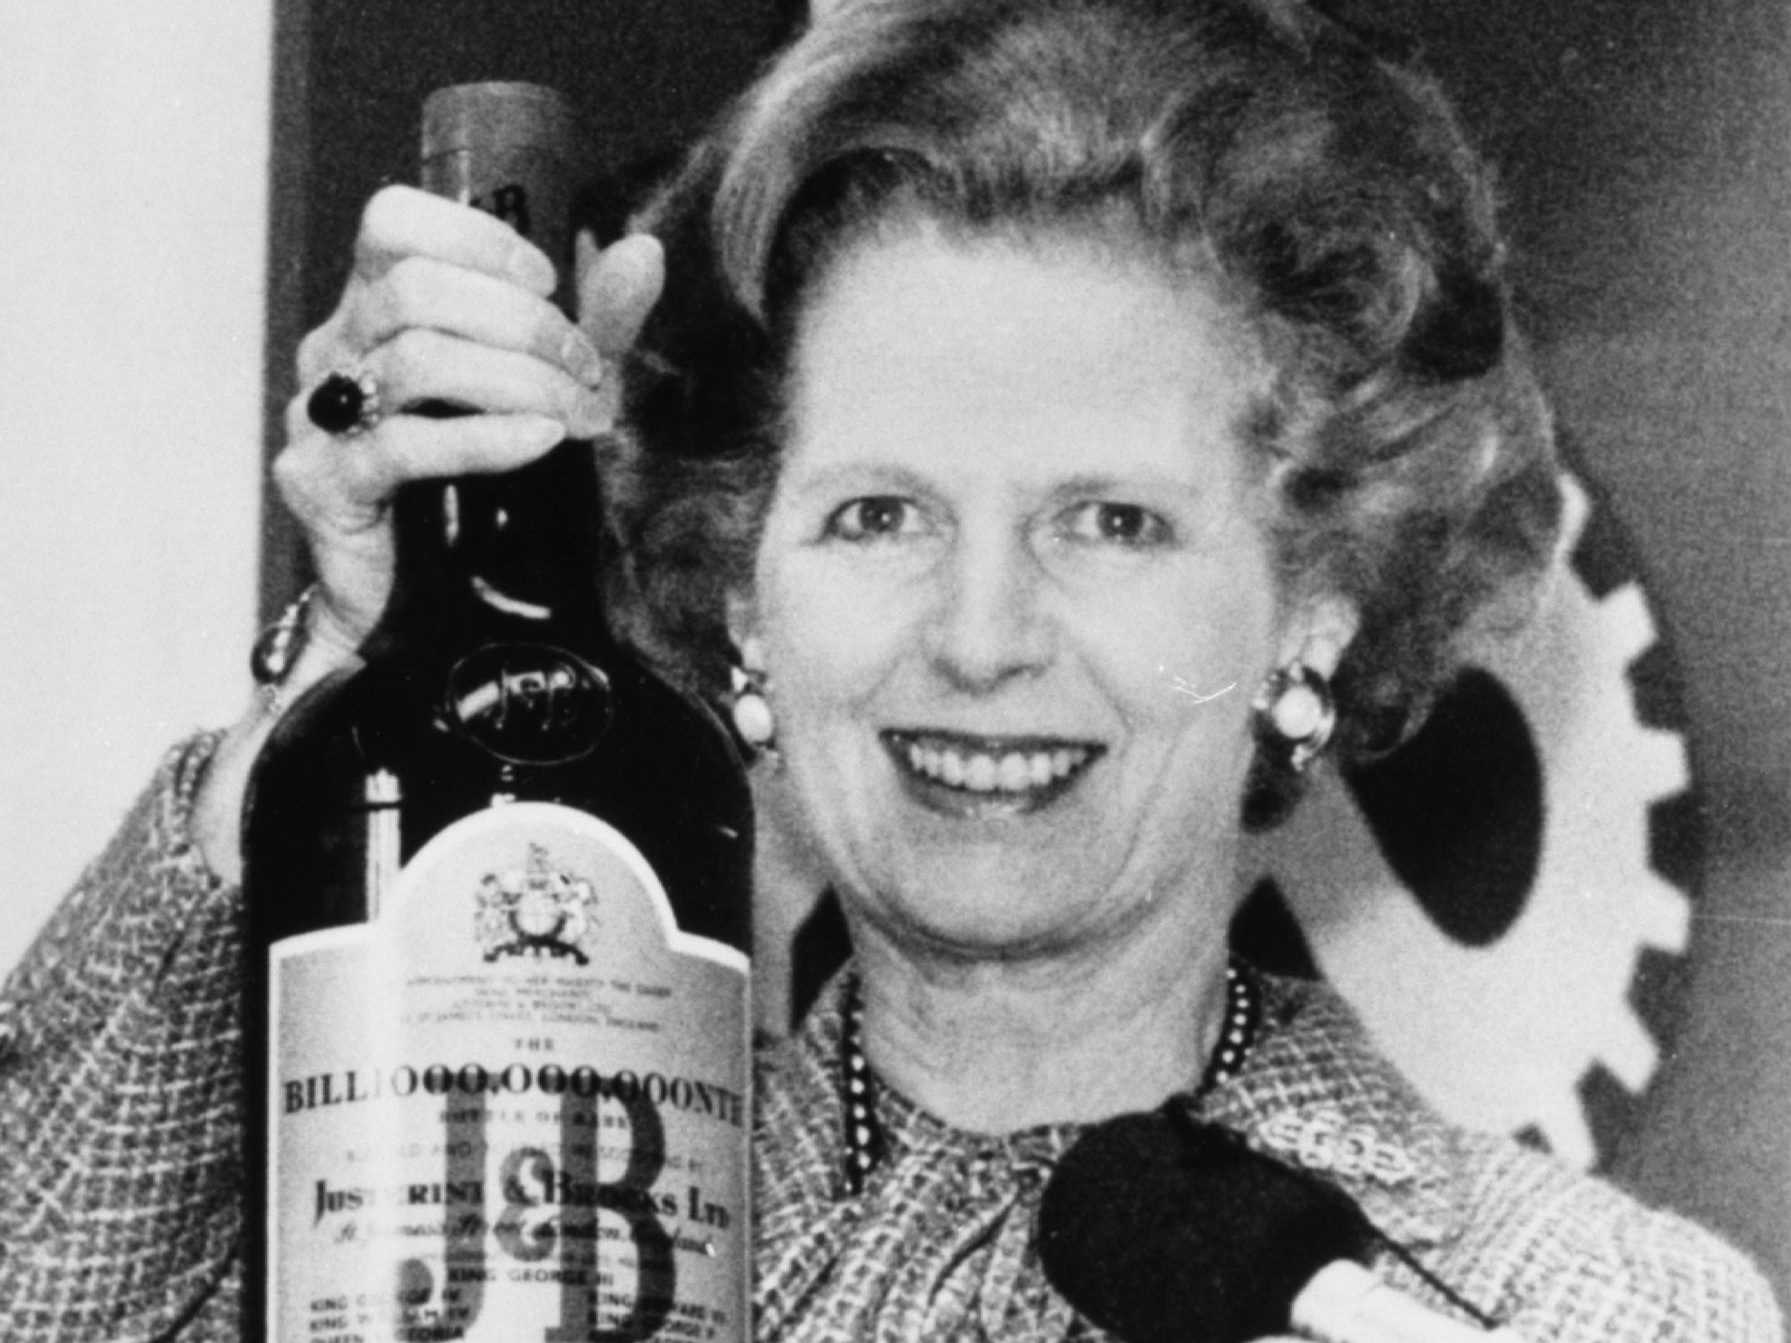 margaret-thatcher-was-freakishly-correct-about-why-the-euro-would-be-such-a-big-disaster